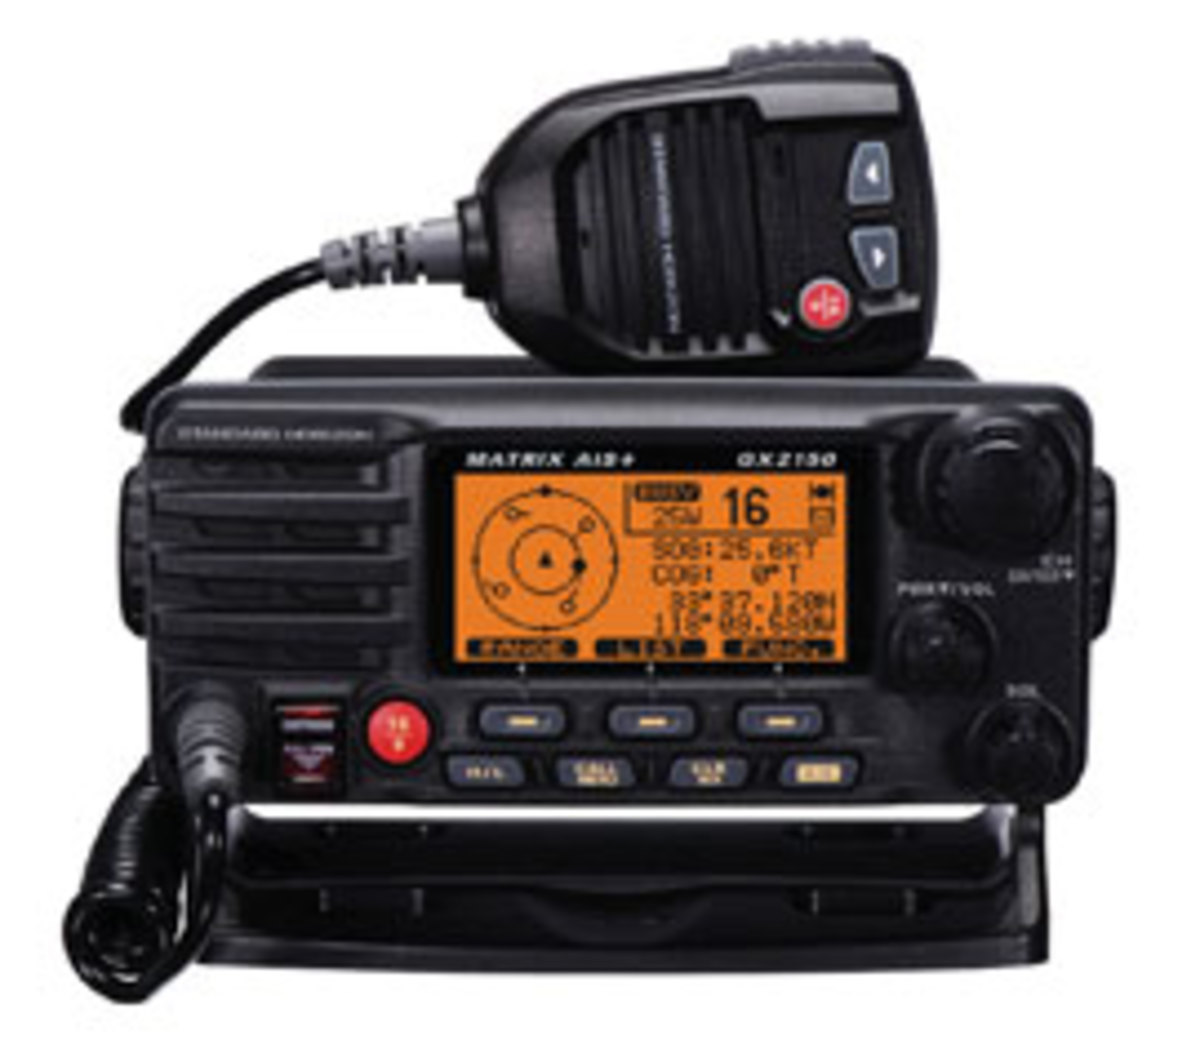 The Standard Horizon Matrix GX2150 AIS+ VHF ($399.95) has a built-in AIS receiver.